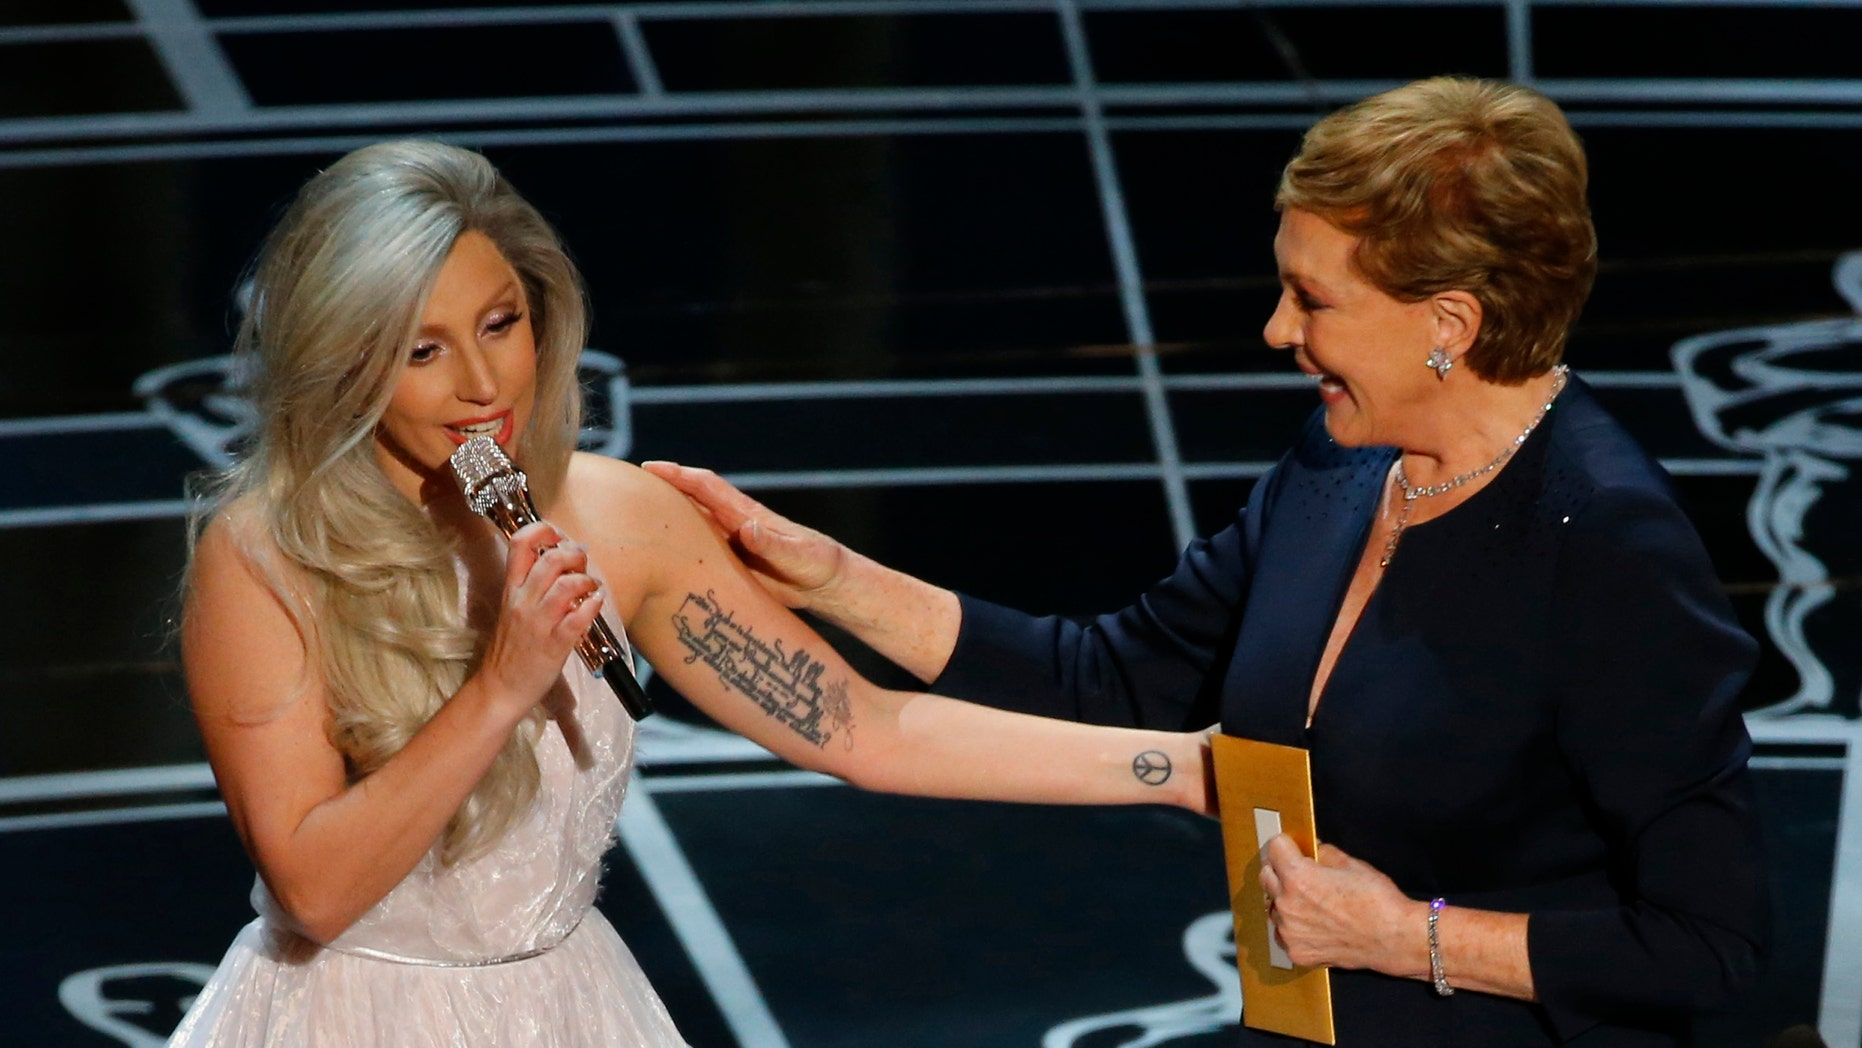 Singer Lady Gaga (L) pays tribute to Julie Andrews after performing songs from the Sound of Music at the 87th Academy Awards in Hollywood, California February 22, 2015.  REUTERS/Mike Blake (UNITED STATES TAGS:ENTERTAINMENT) (OSCARS-SHOW) - RTR4QP5C